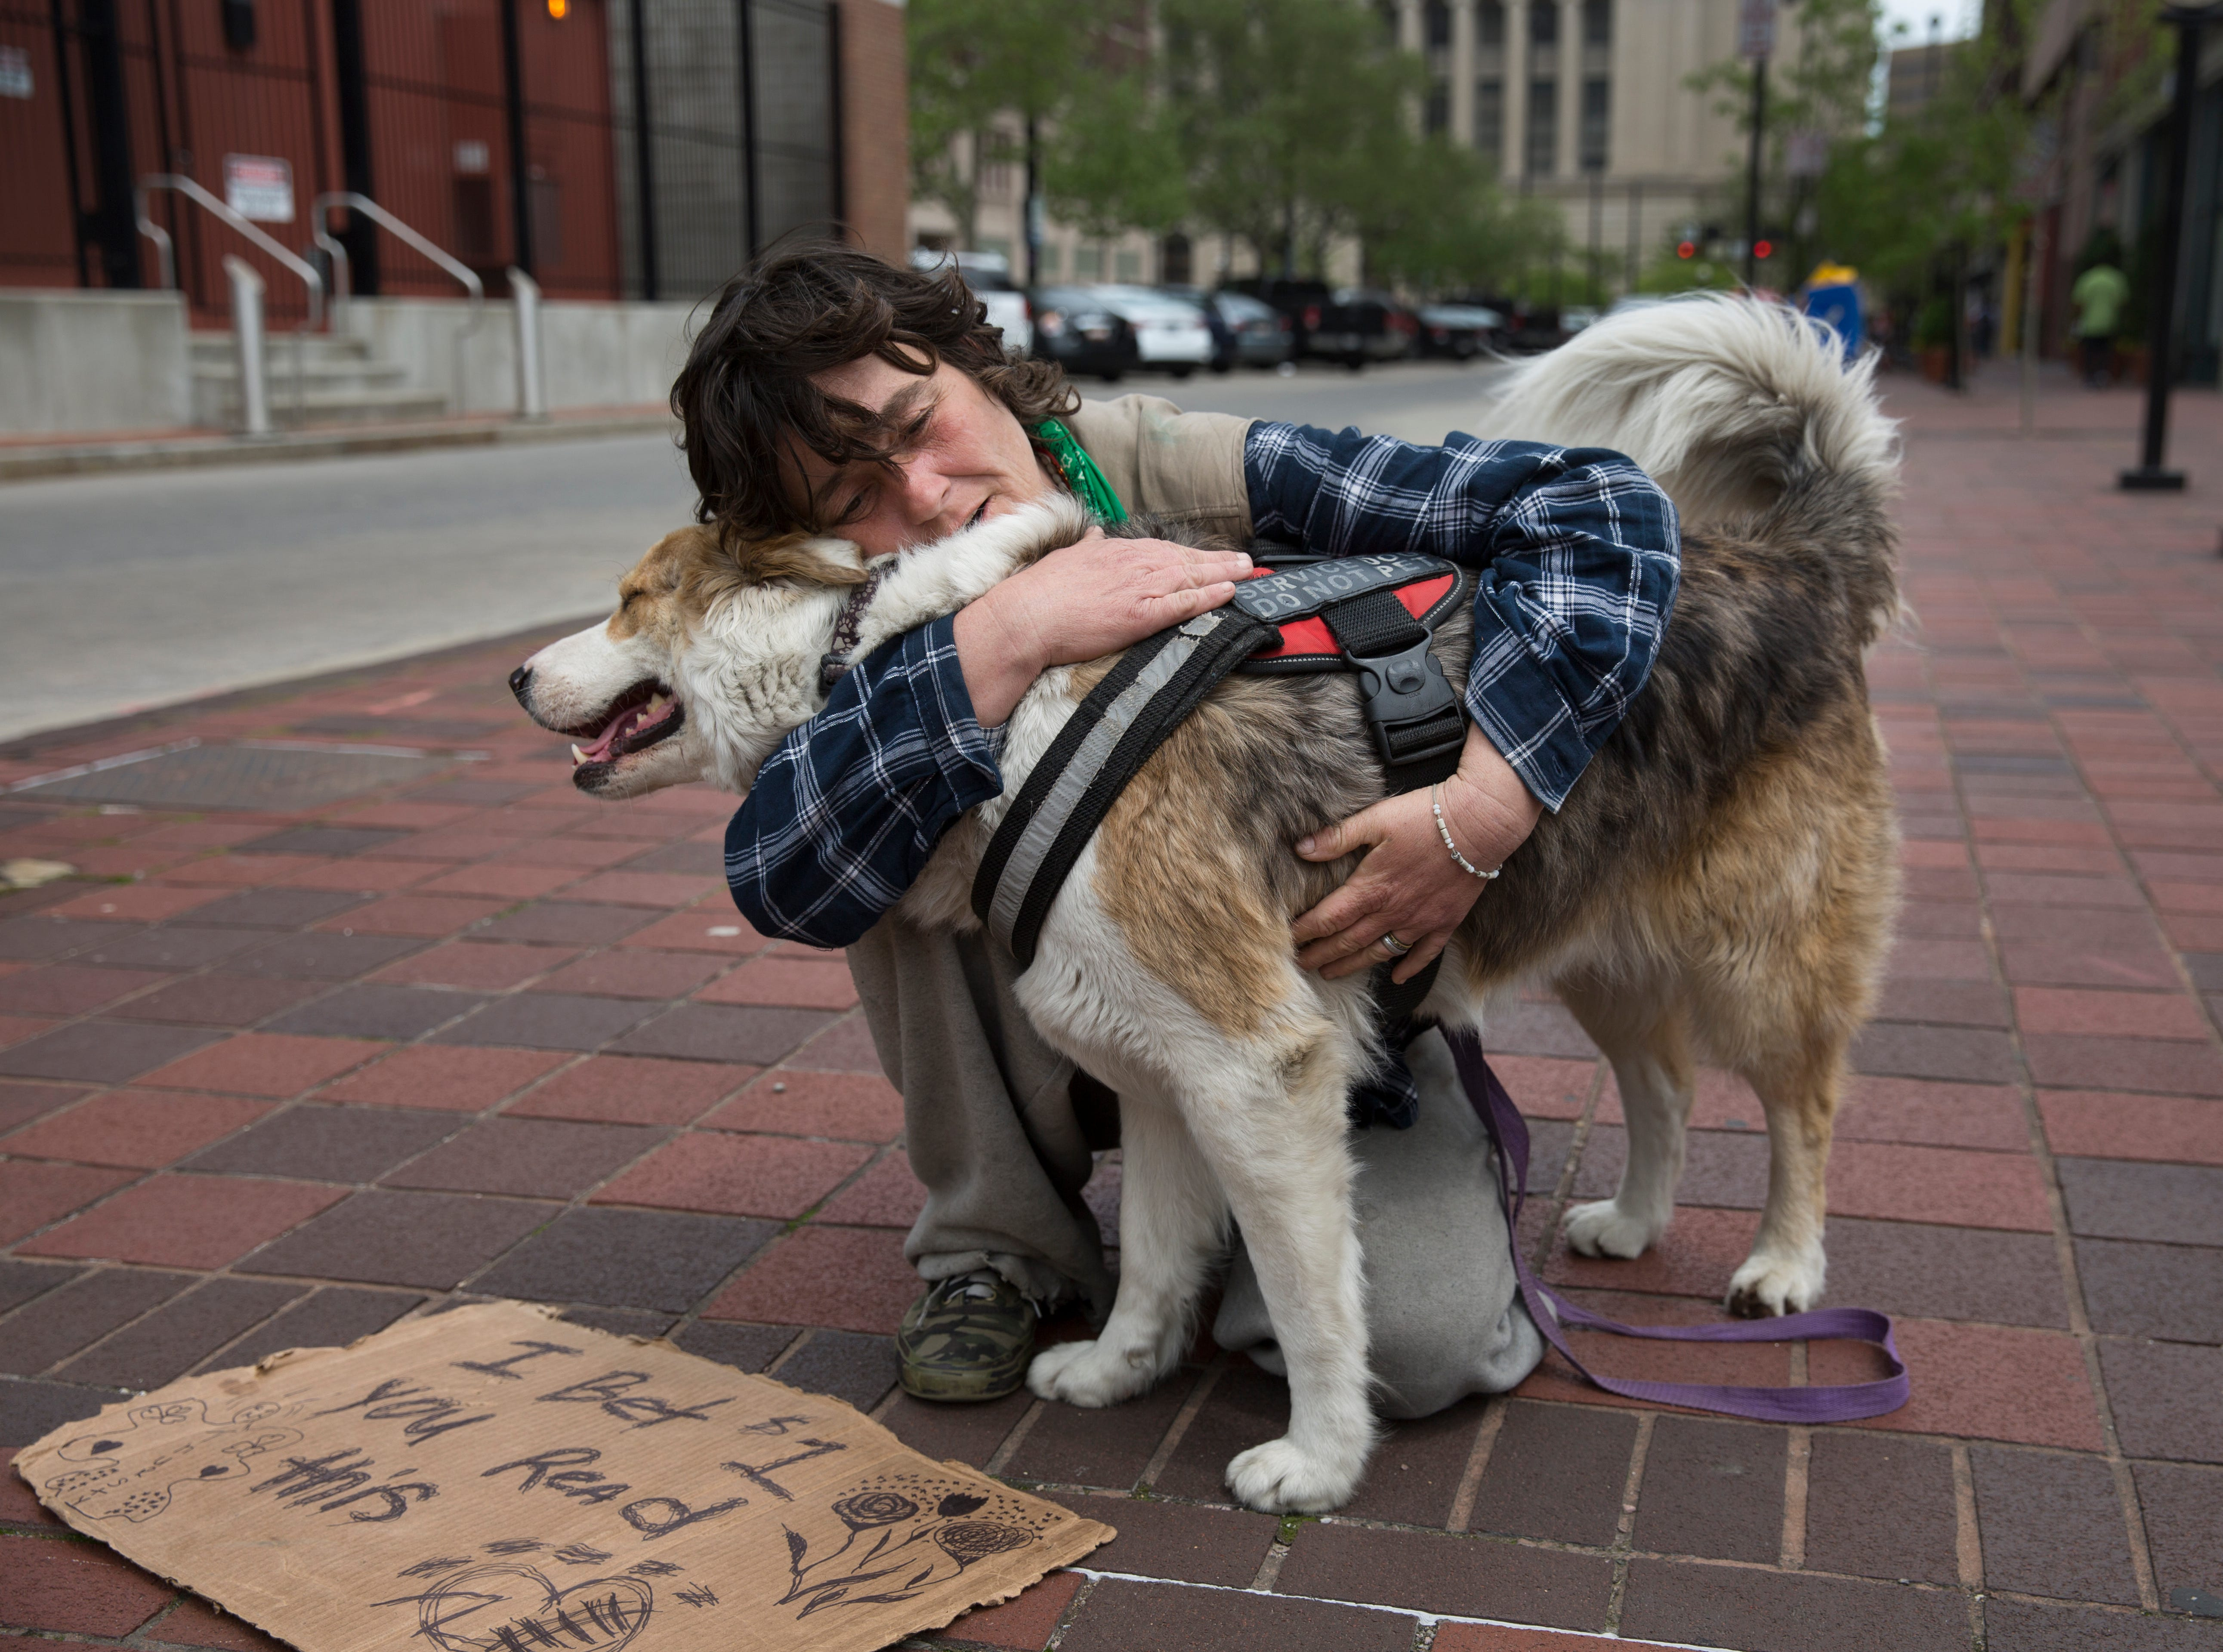 Katrina Wilson, 40, flies a sign on Court Street at Walnut, near the Hamilton County Courthouse, Wednesday, May 1, 2019. Wilson, who is homeless, keeps her six-year-old dog, Thirsty, with her. She said he's a service dog. Wilson is proud to say she's been sober off heroin for 12 months and counting.